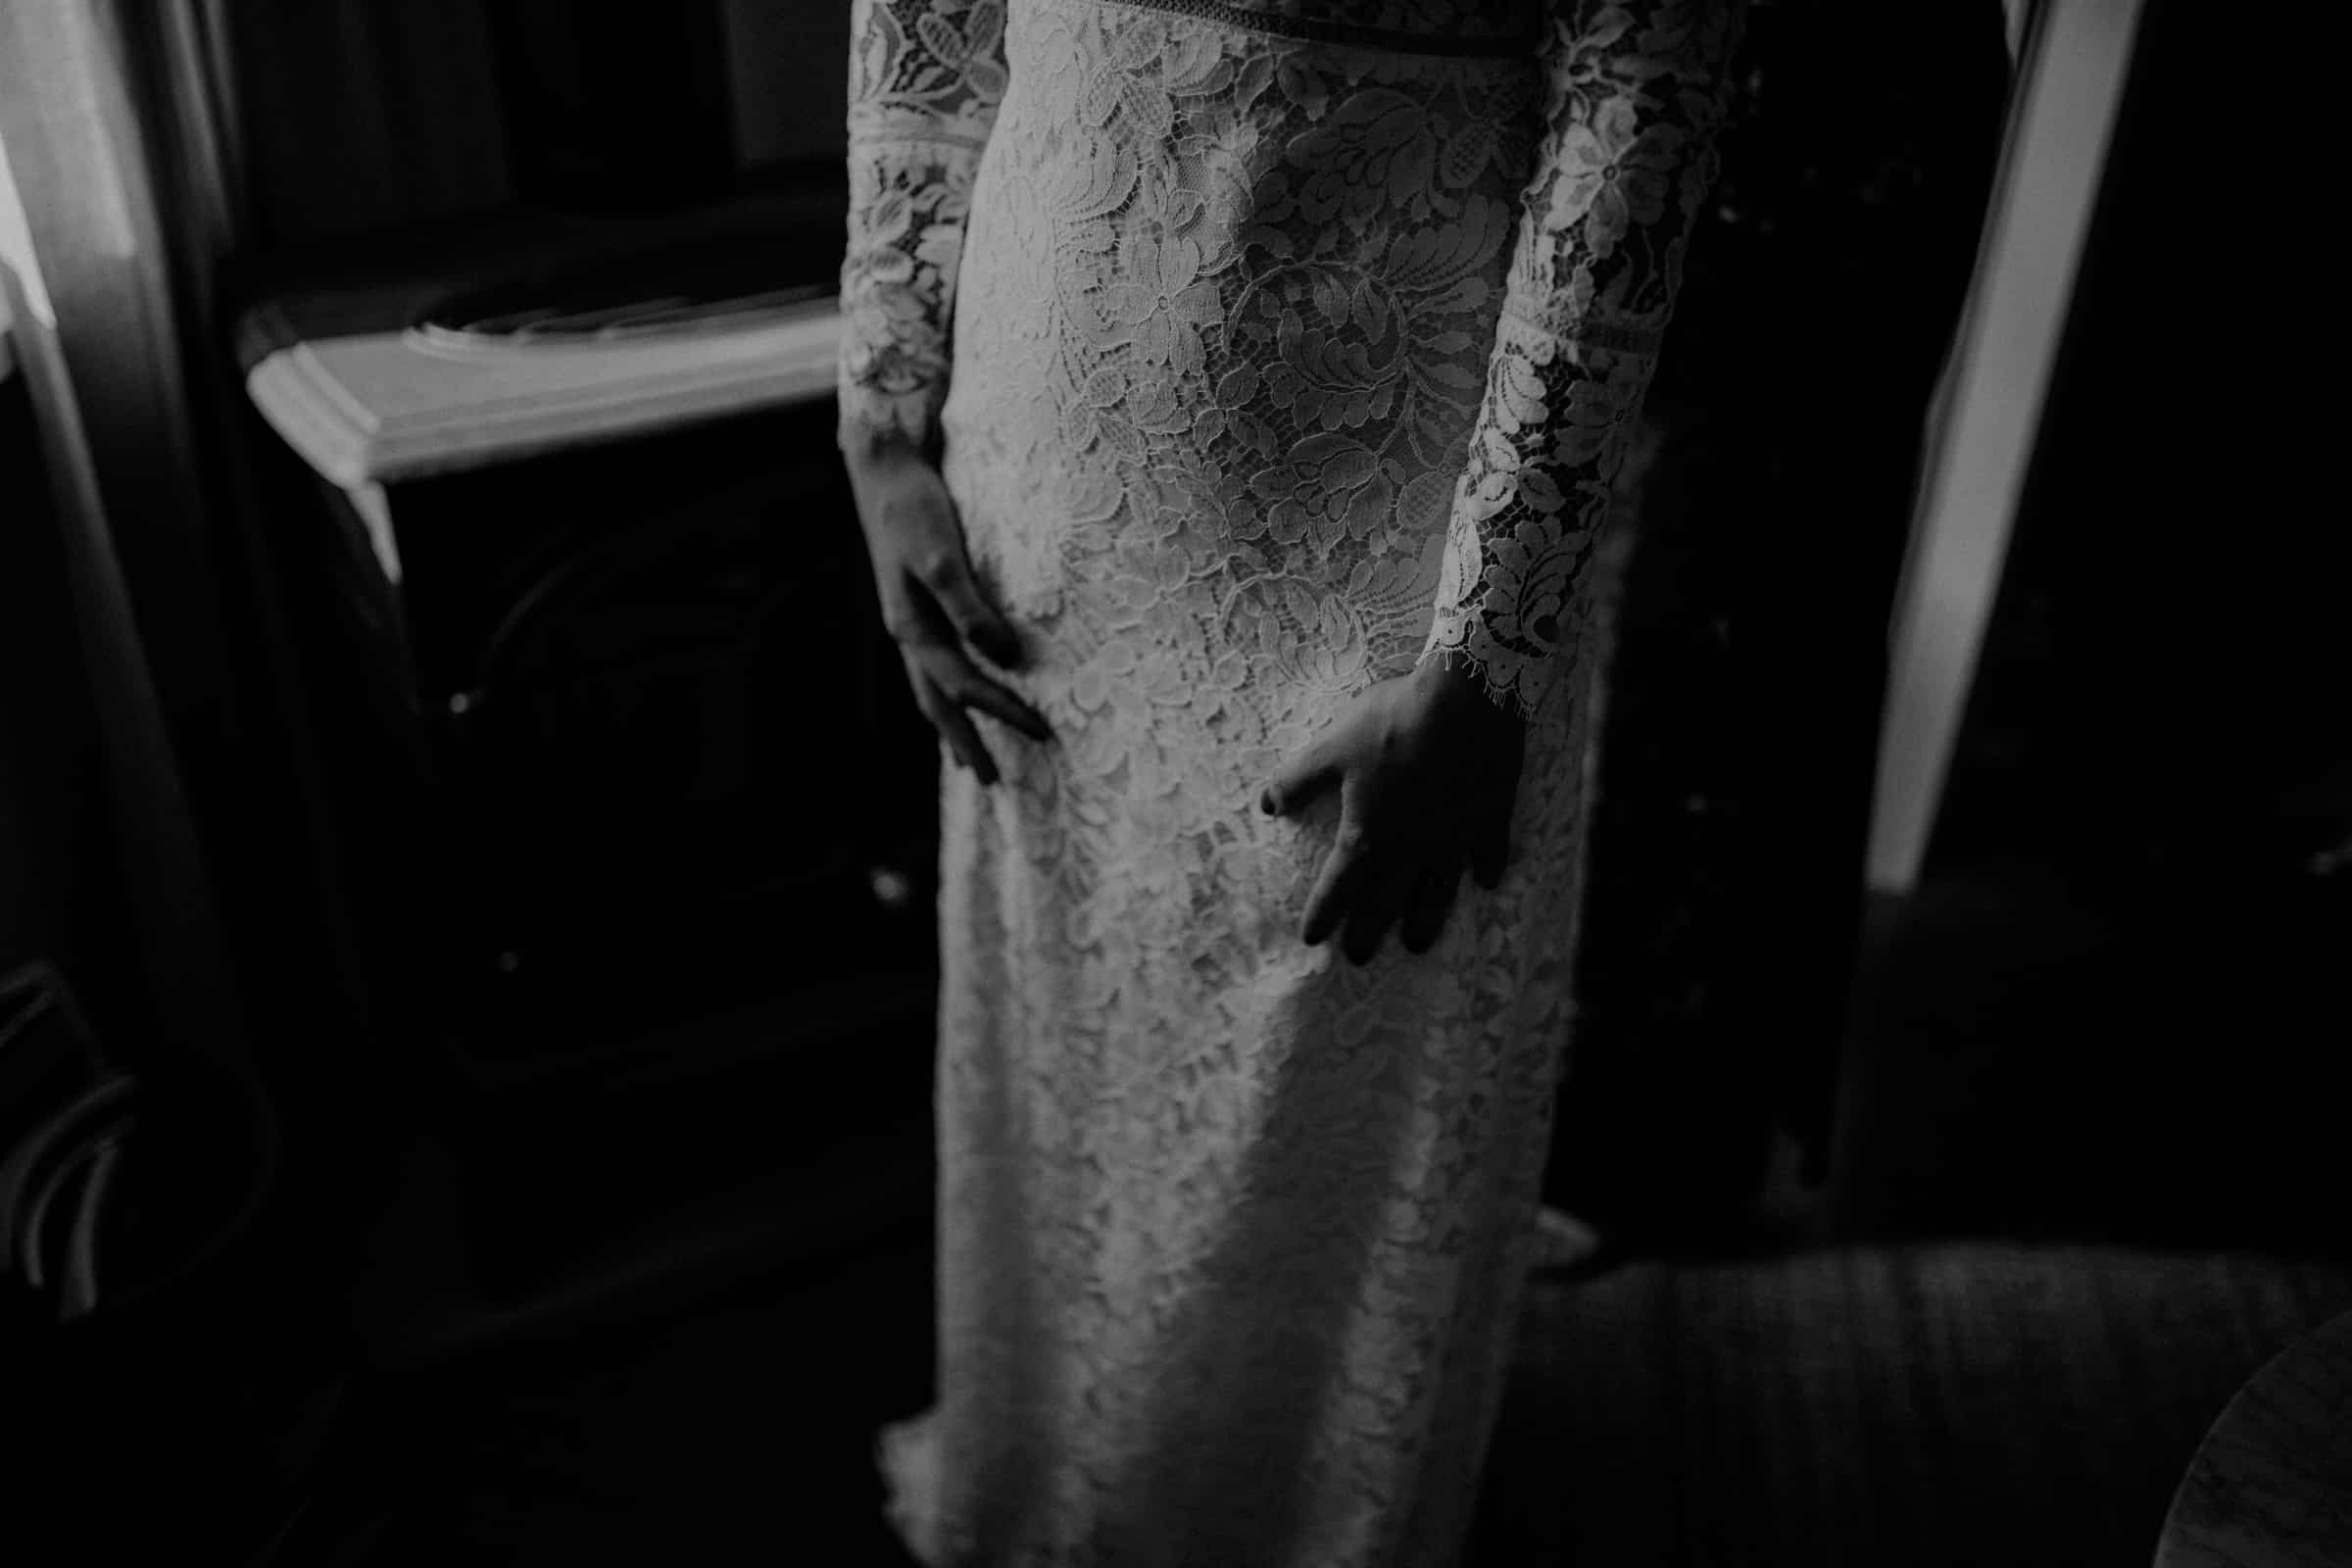 This closeup shows the bride in her wedding dress.